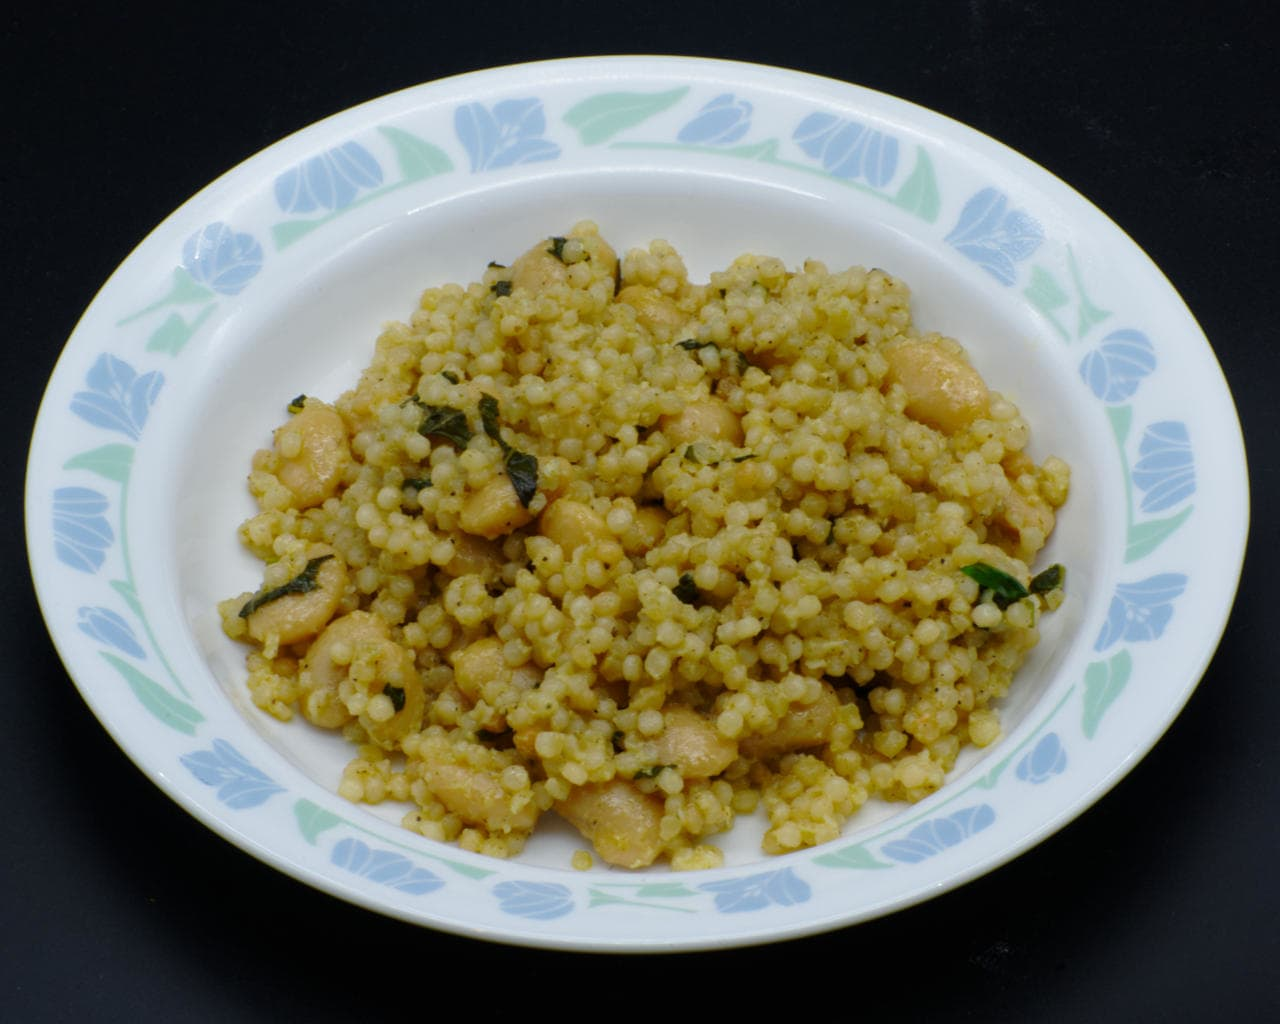 Pearl Couscous With Butter (Lima) Beans and Pesto Image